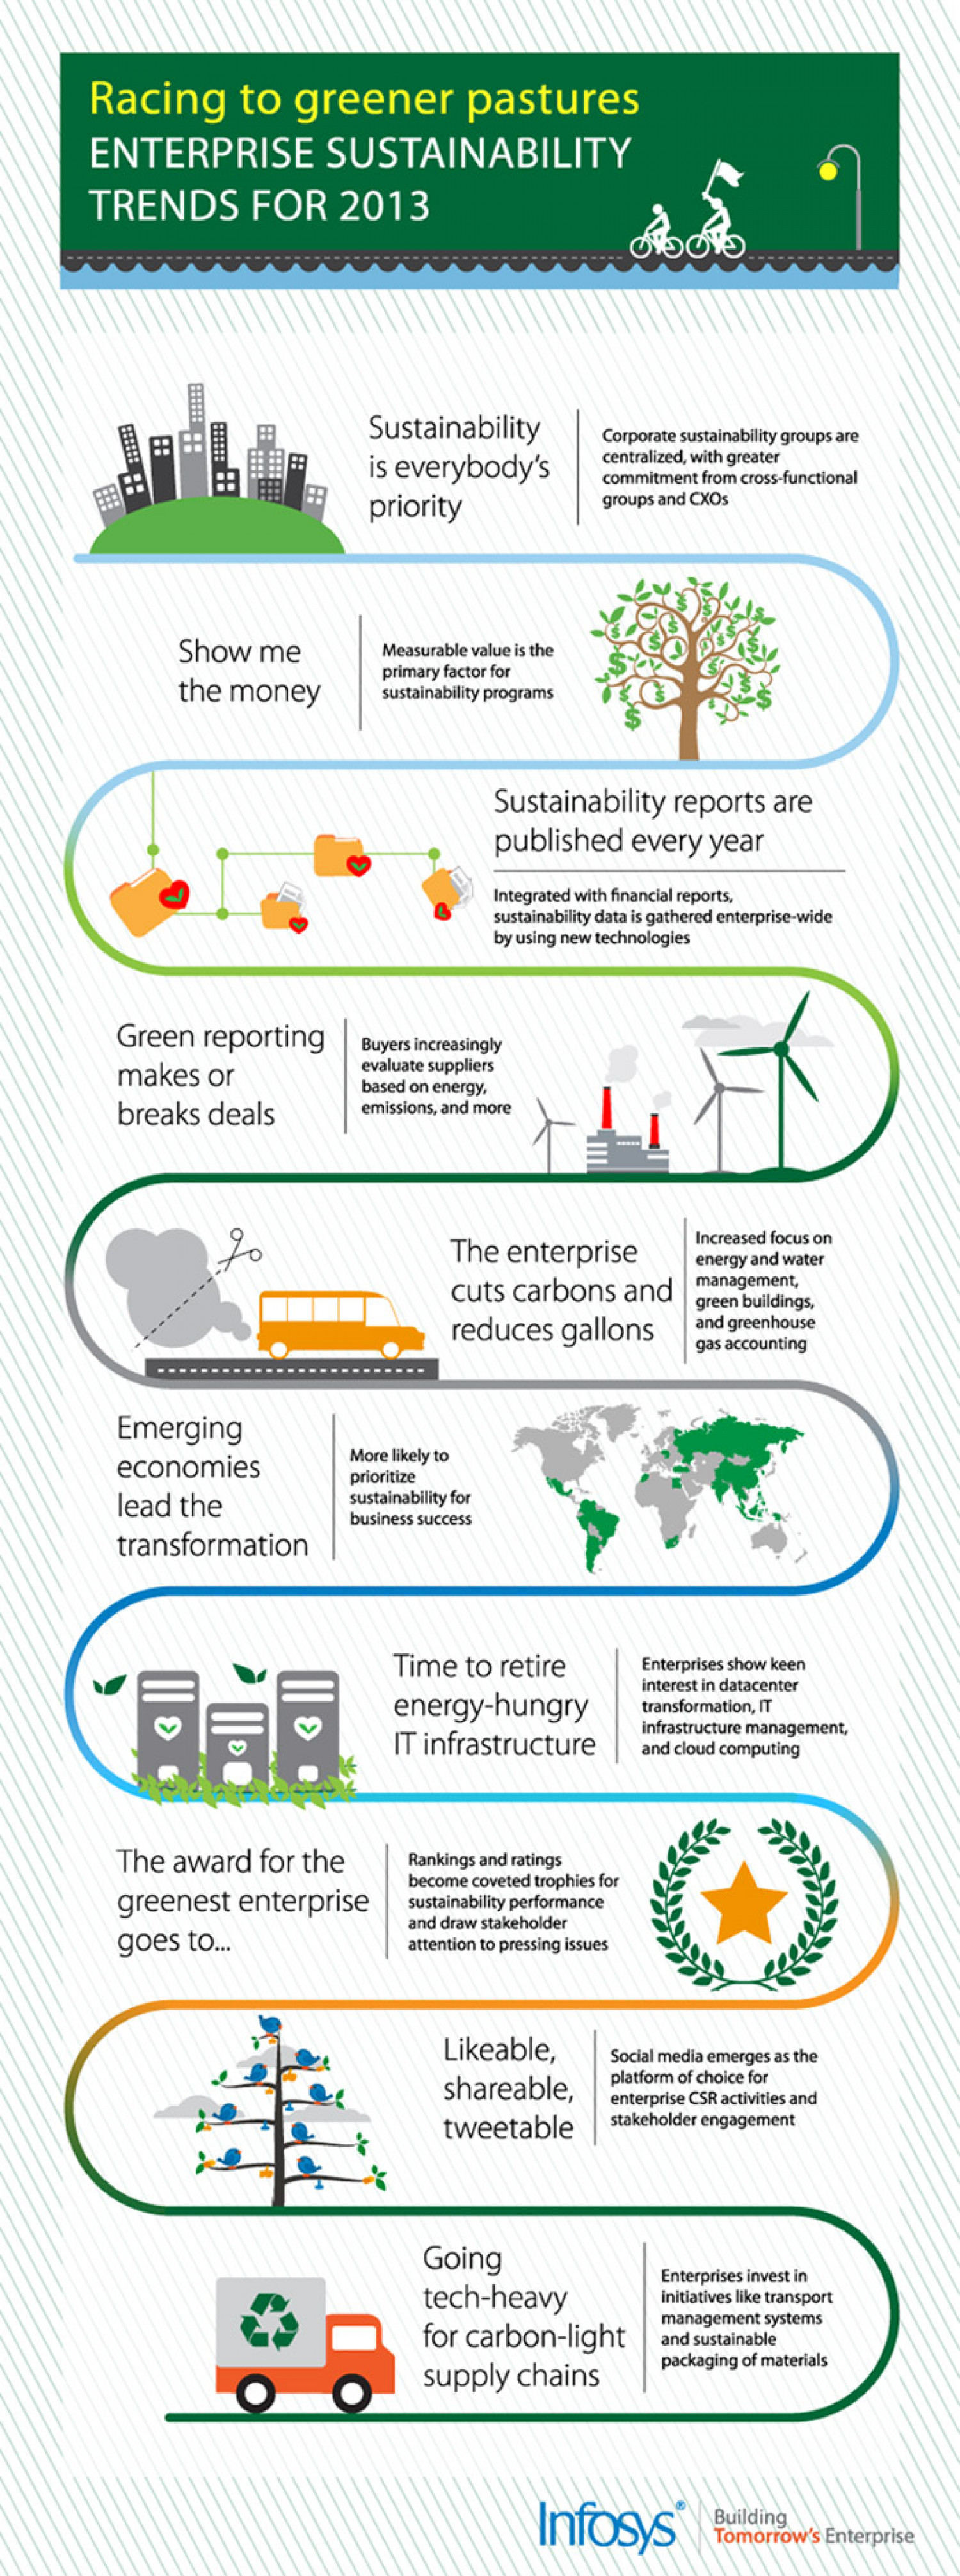 Enterprise Sustainability Trends For 2013 Infographic